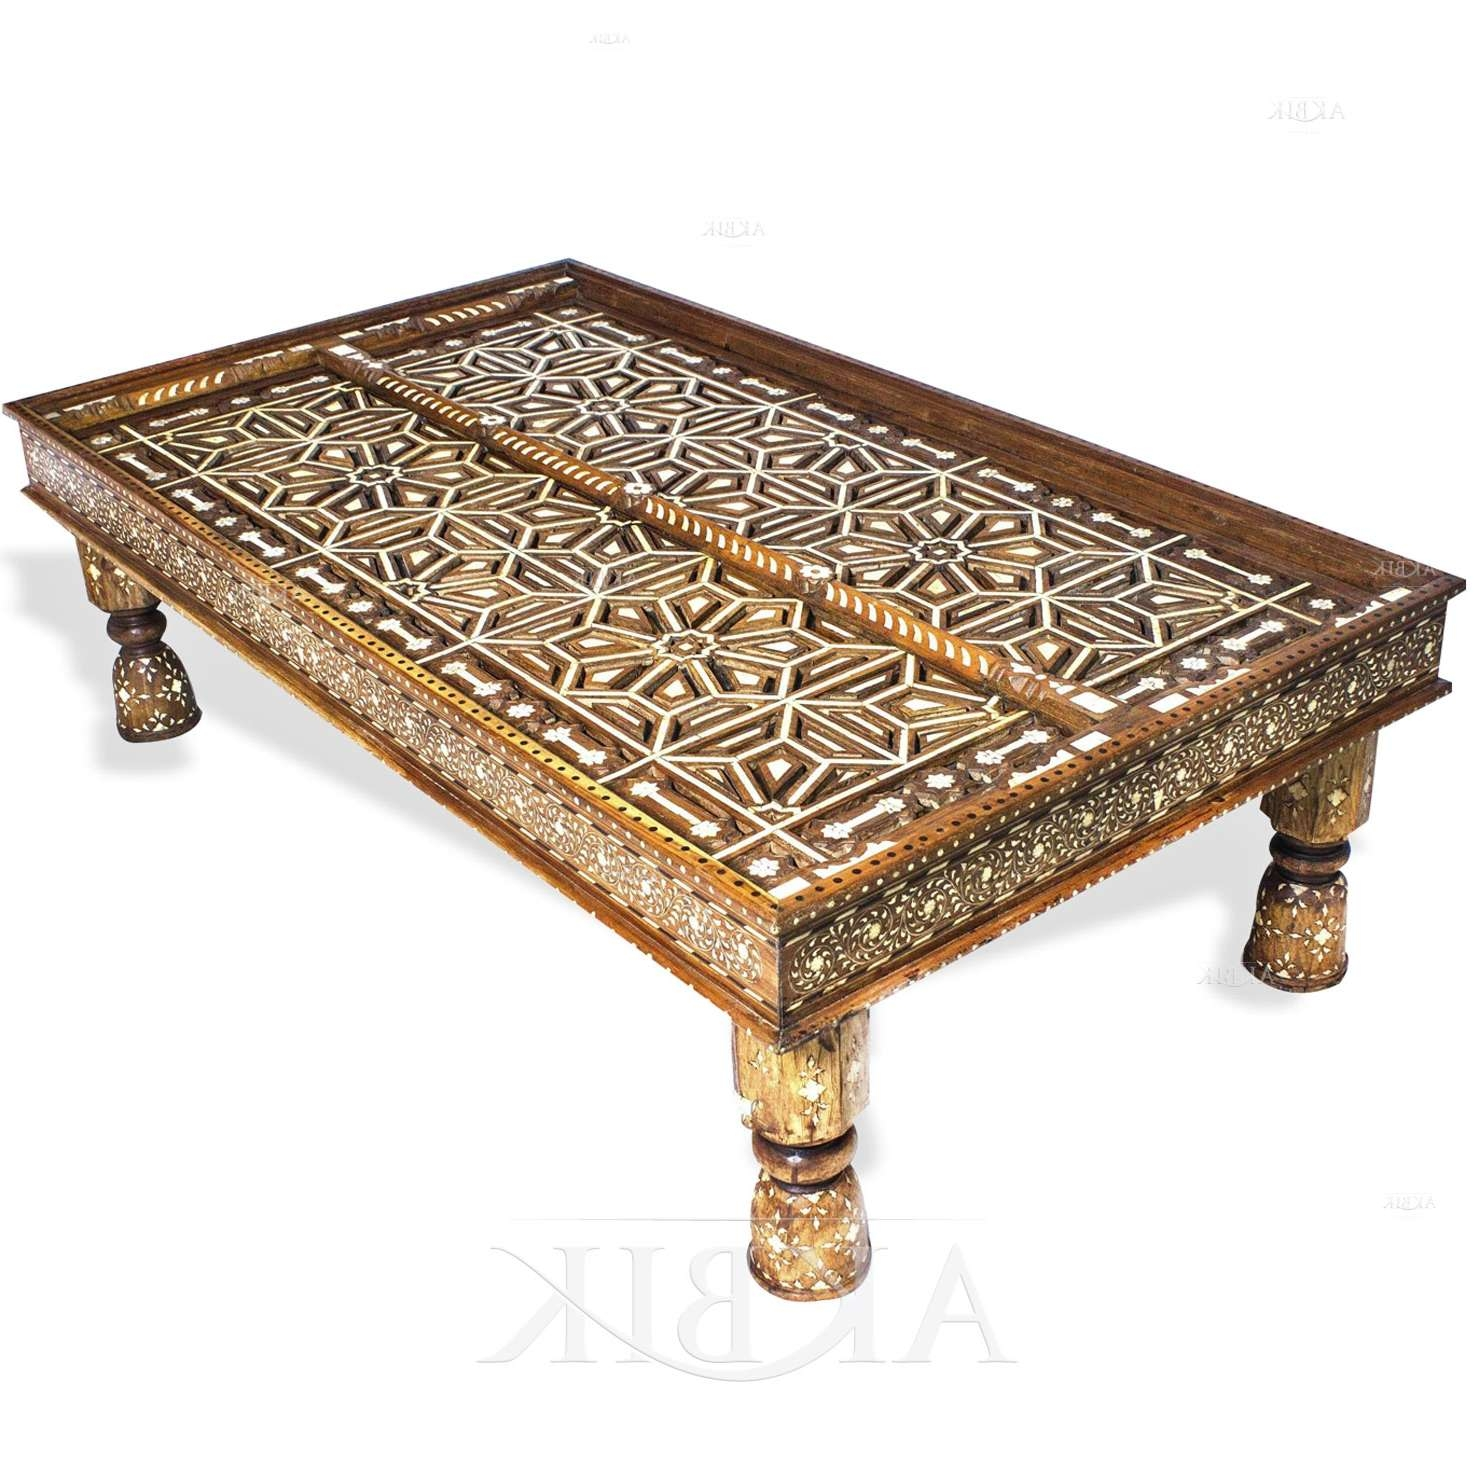 Mediterranean, Levantine & Syrian Furniture Inlaid With Mother Of Within Newest Mother Of Pearl Coffee Tables (View 7 of 20)